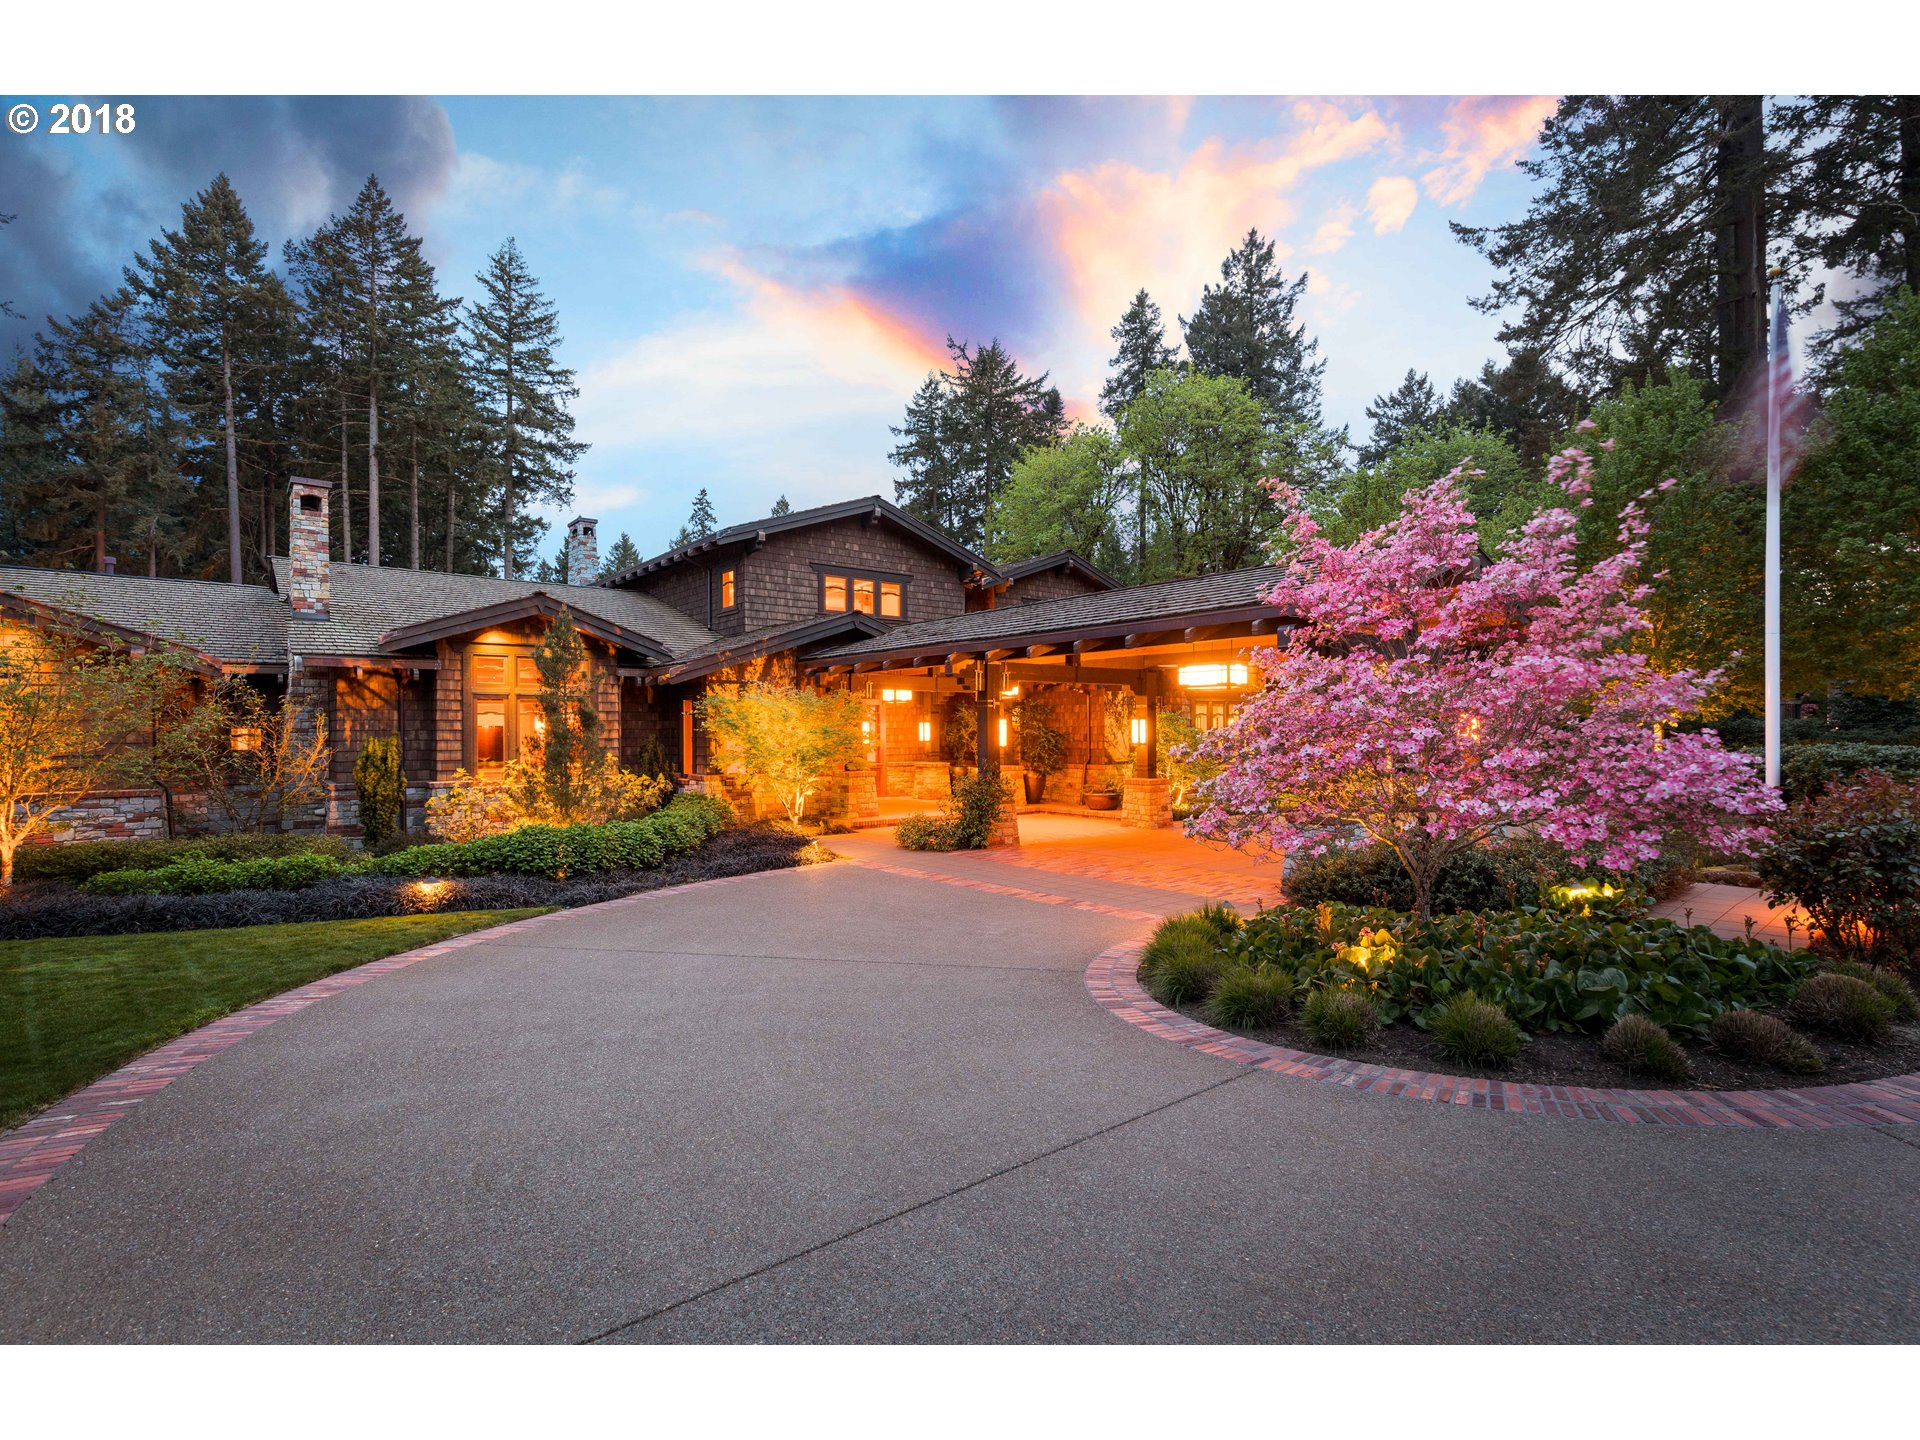 6923 sq. ft 4 bedrooms 4 bathrooms  House For Sale, Portland, OR